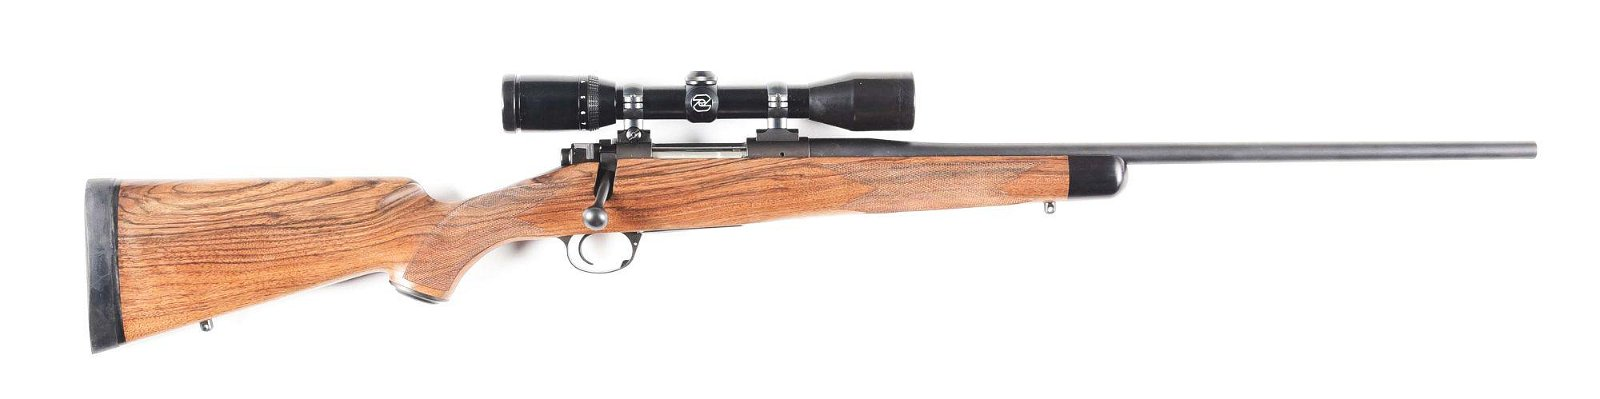 (M) KIMBER 84M SELECT GRADE .308 BOLT ACTION RIFLE WITH